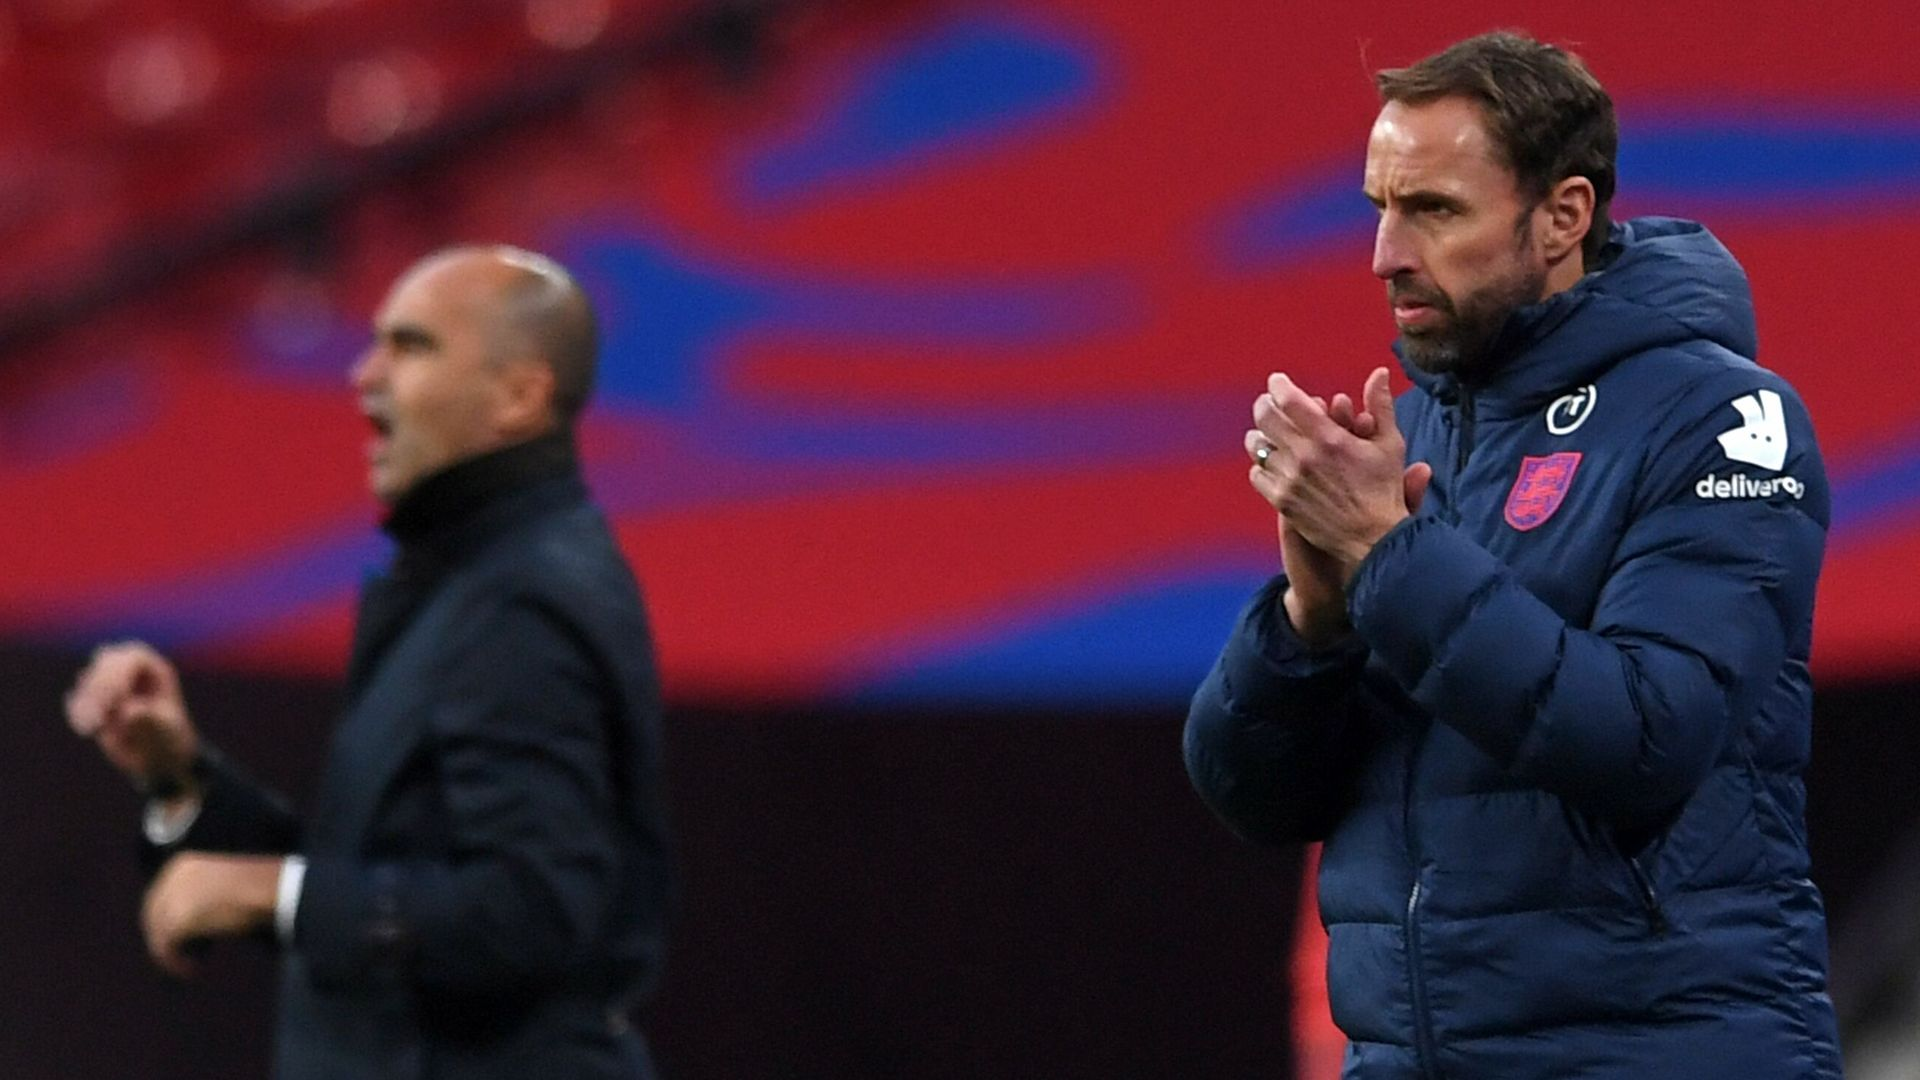 Southgate: Big moment for England